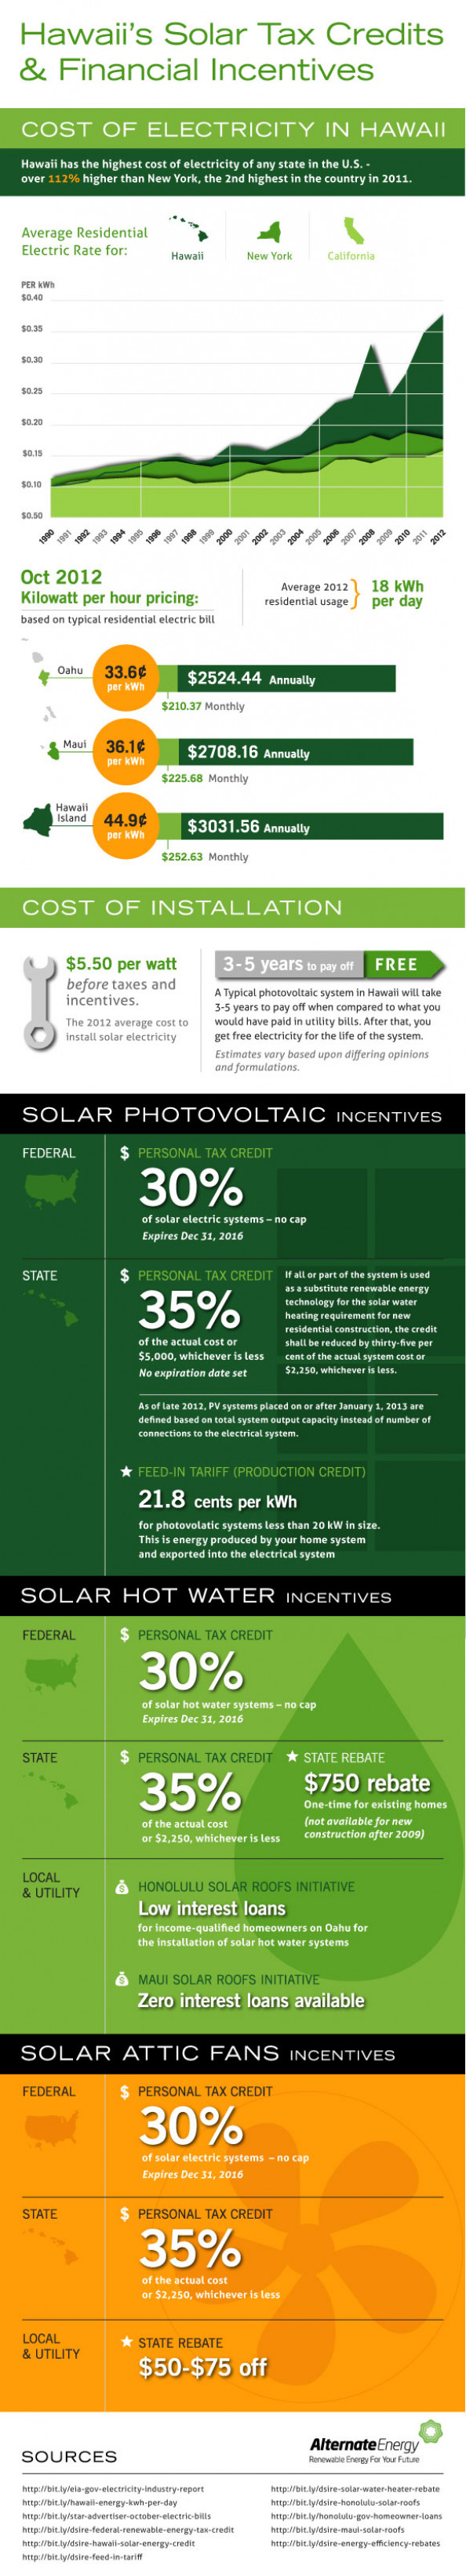 Hawaii's Solar Tax Credits & Financial Incentives Infographic